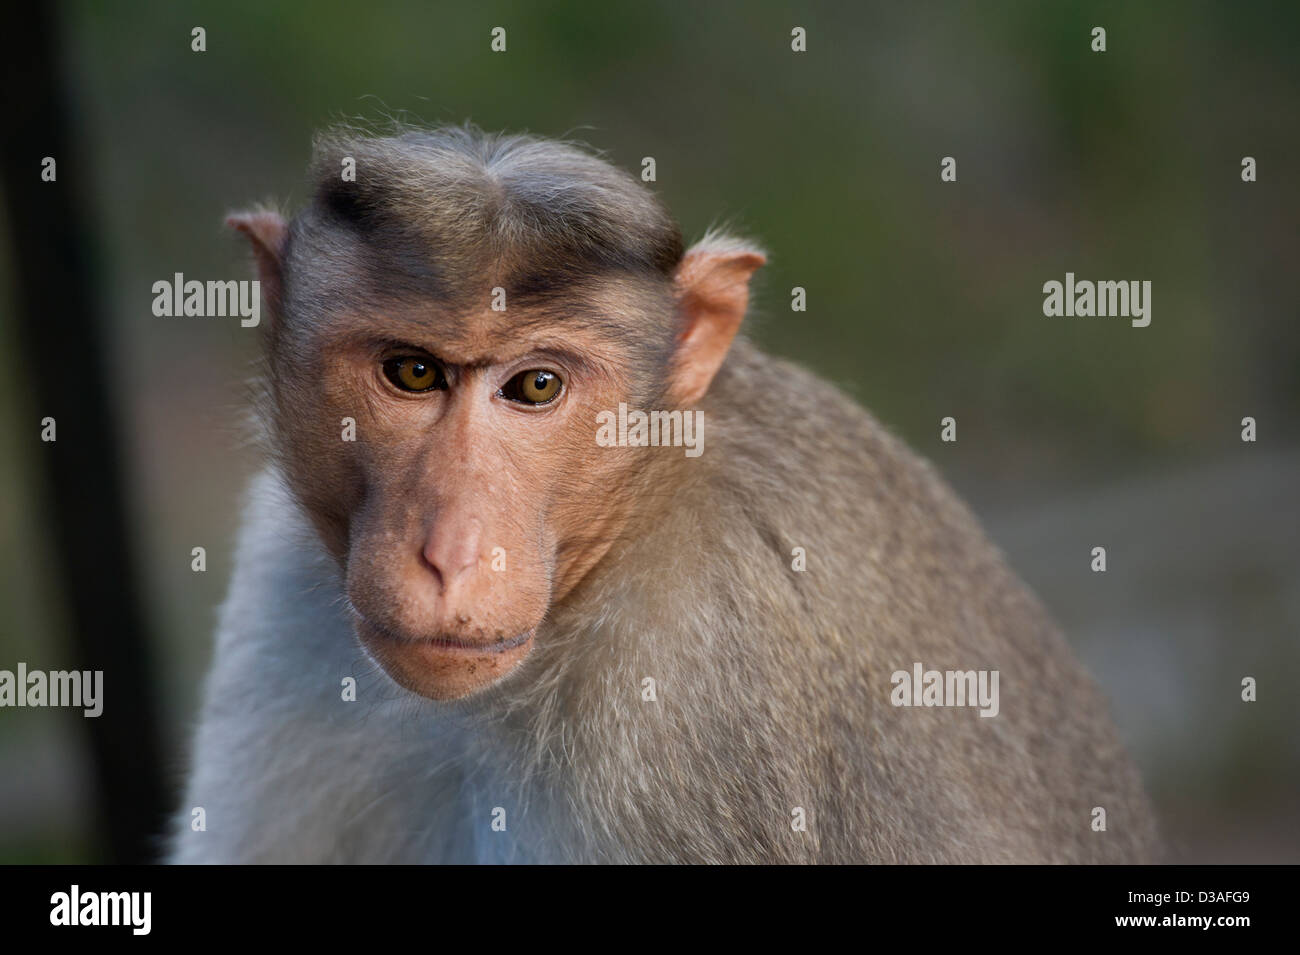 A Bonnet Macaque (Macaca radiata) in the Periyar Tiger Reserve near Thekkady in the Western Ghats, Kerala, India - Stock Image